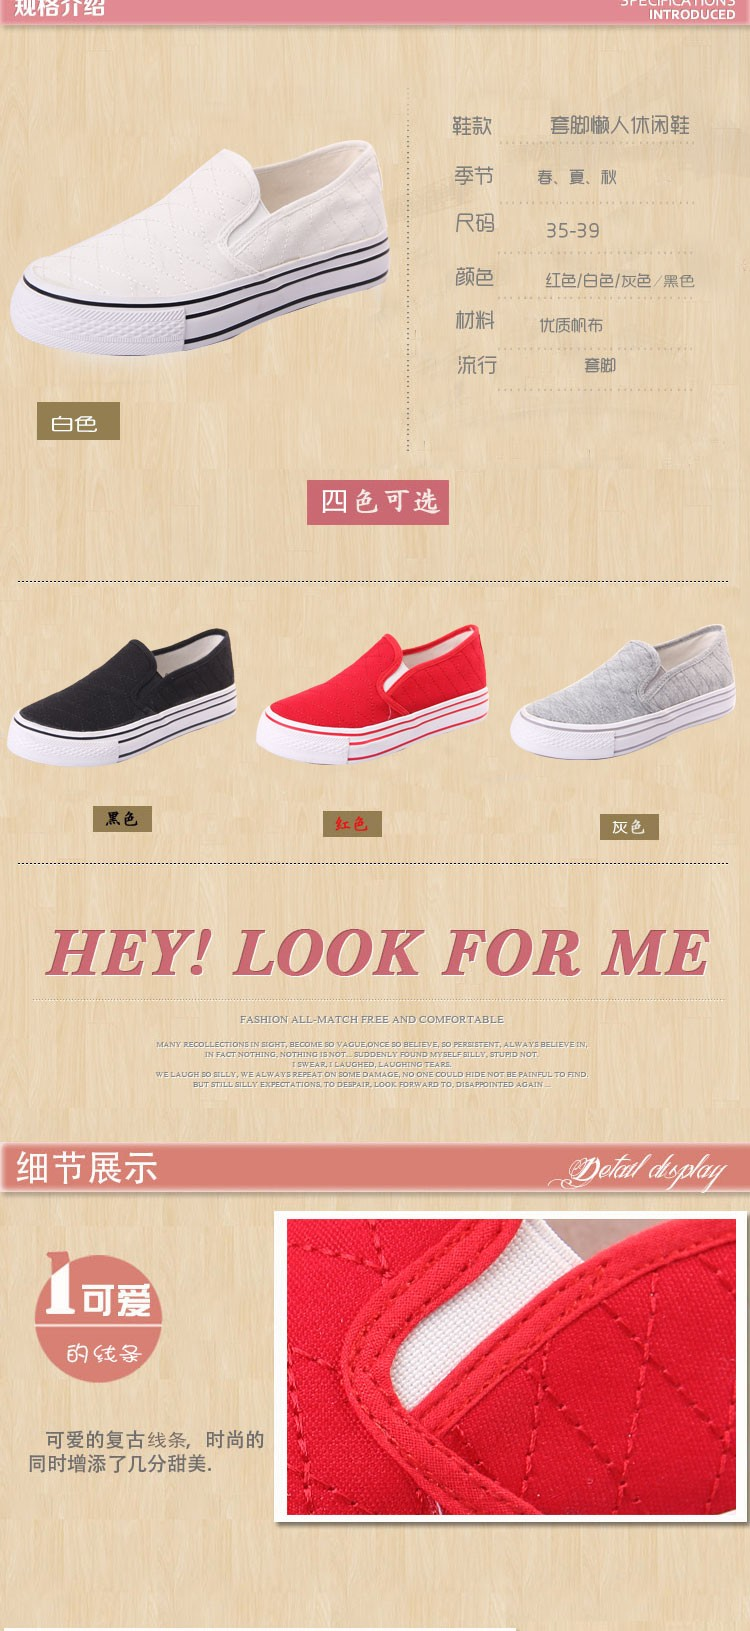 2016 Fresh Solid Color Canvas Shoes Hot Sale Lazy Paltform Thicken Bottom Women Fashion Casual Sapatos Femininos Tenis